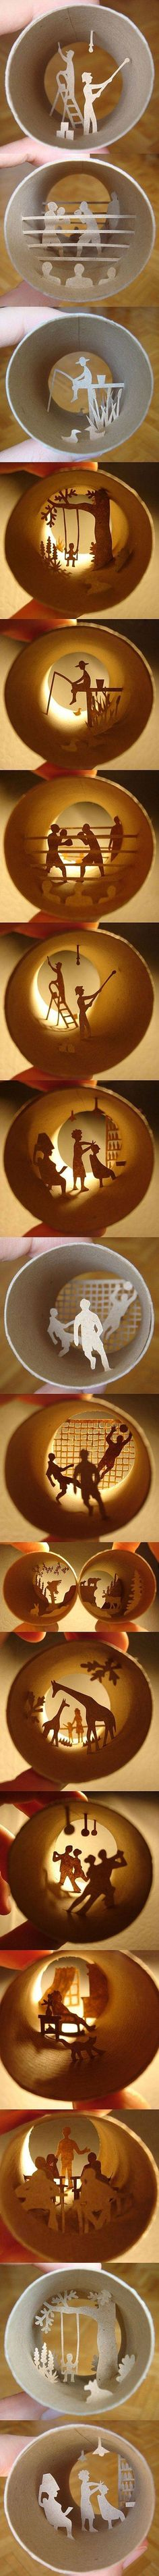 A long one, but it's so cool! Makes me think why I didn't do something similar for 3D.